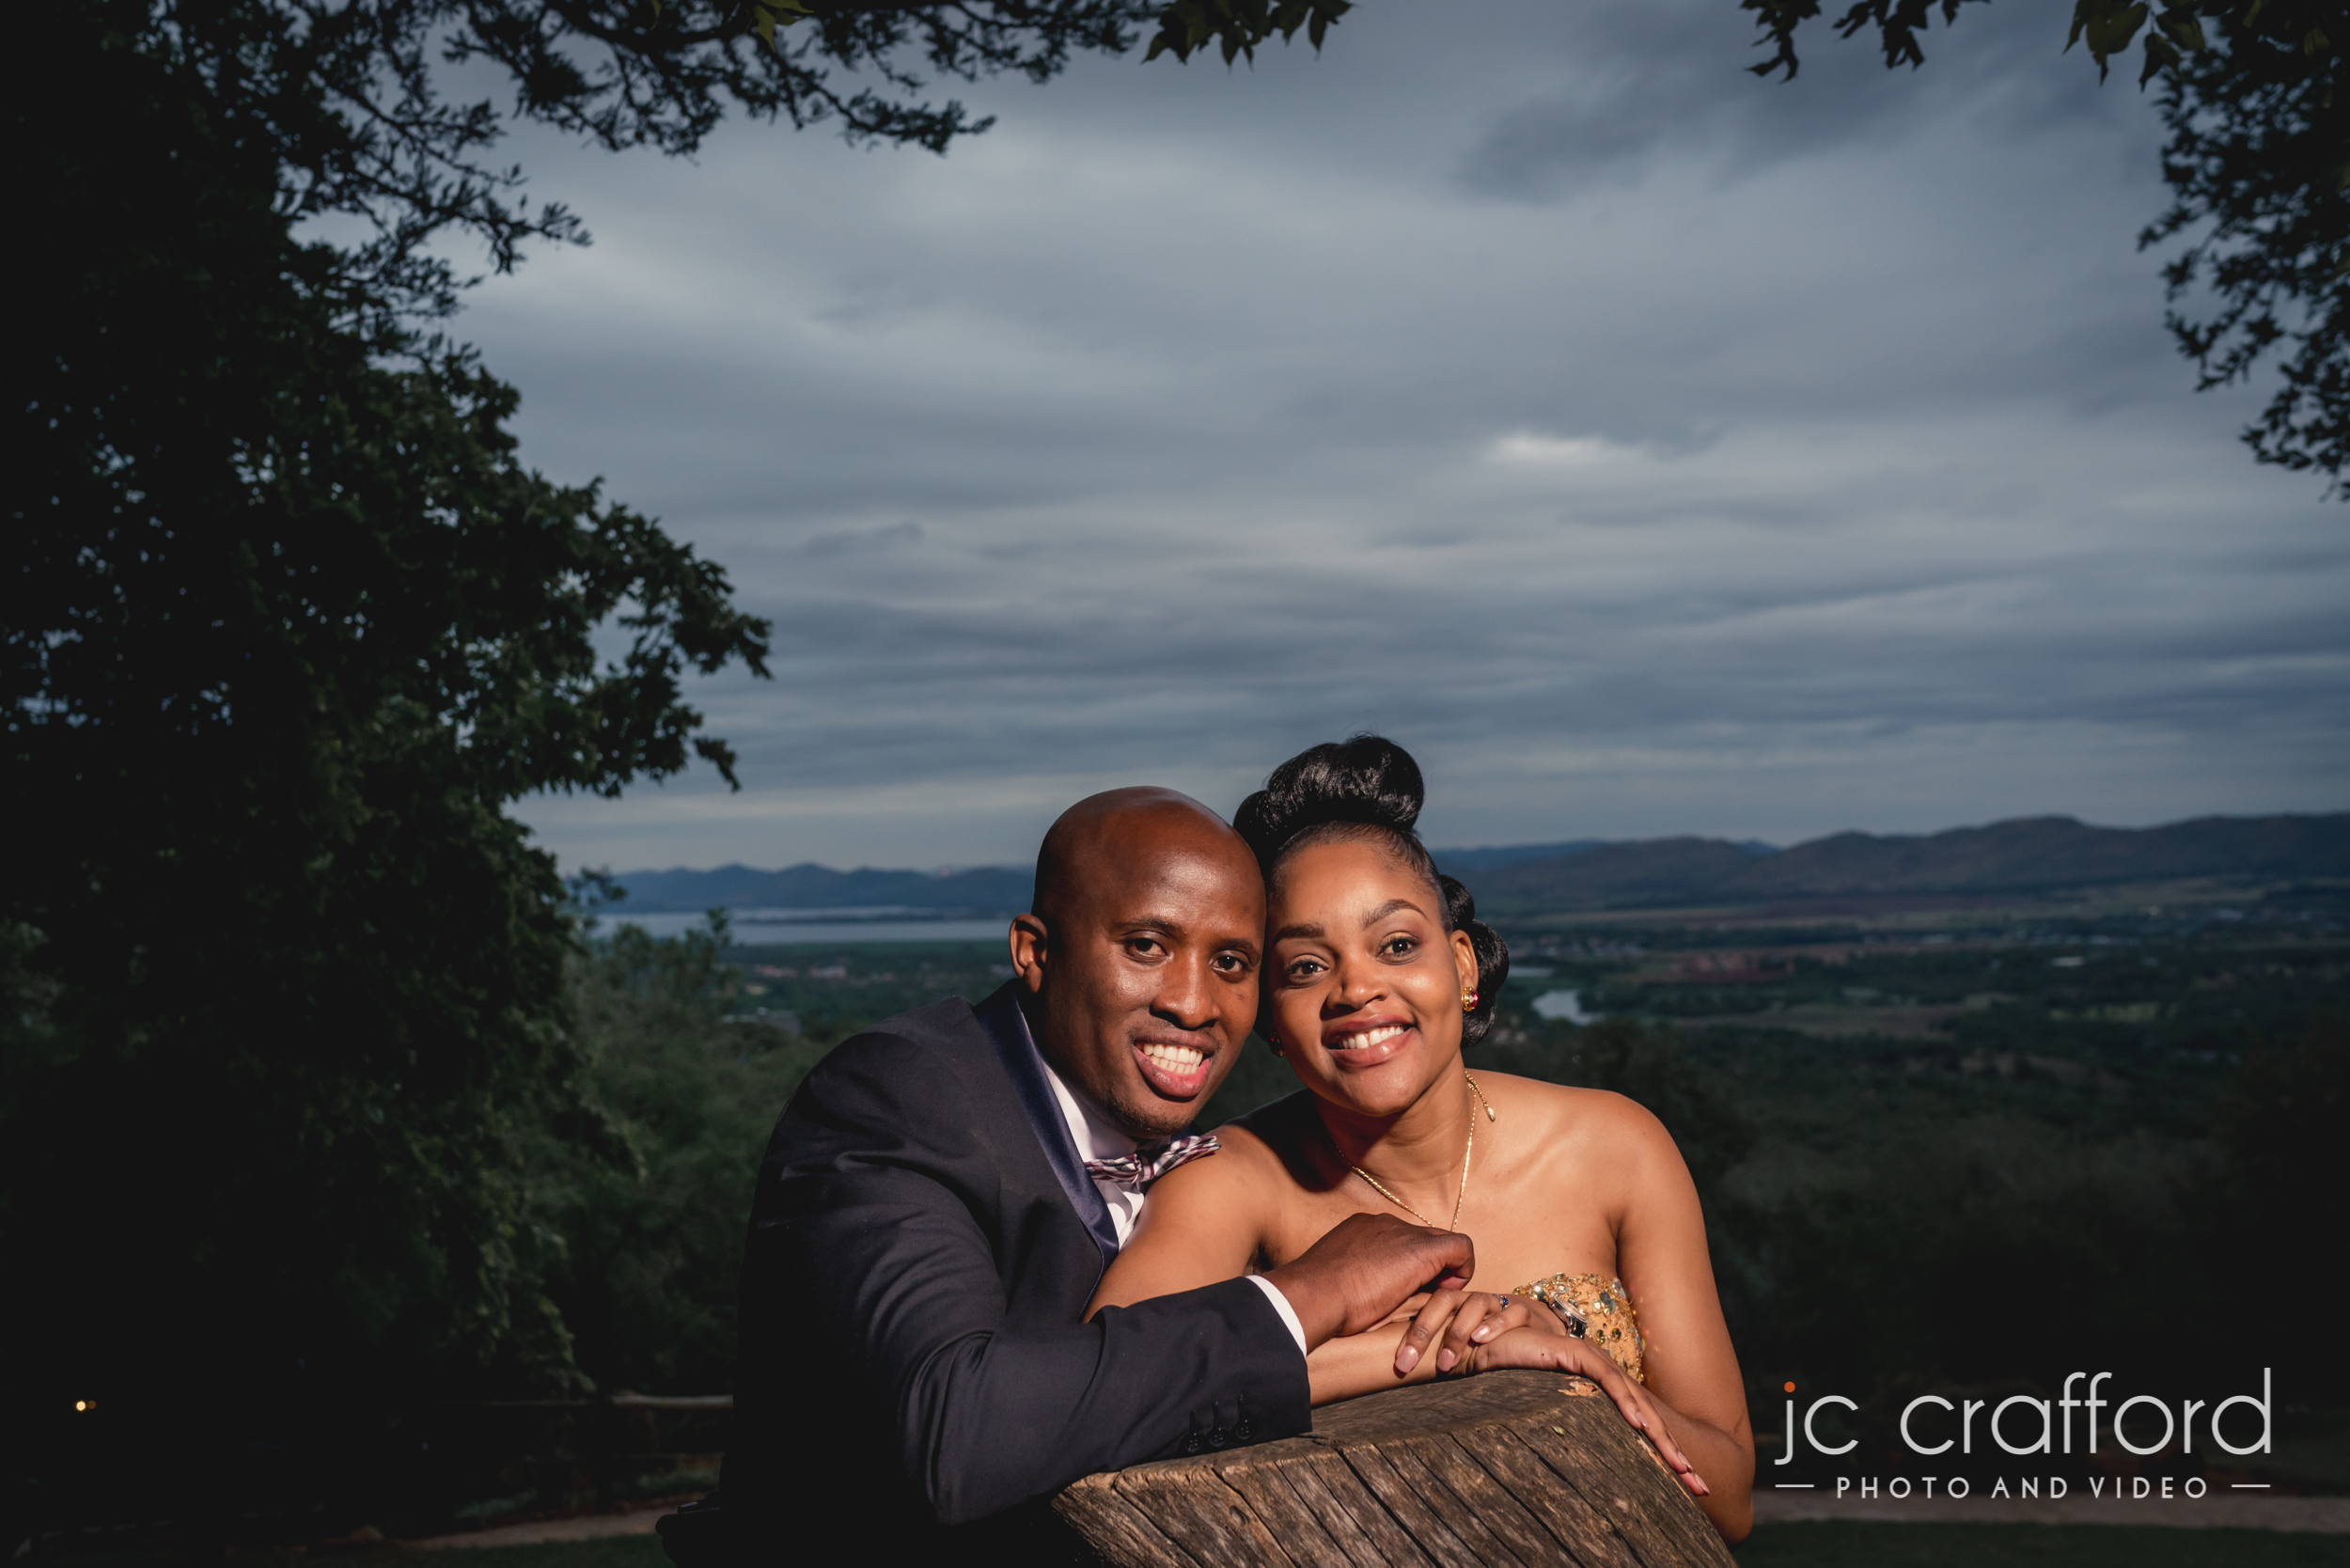 JC Crafford Photo and Video wedding photography at Leopard Lodge in Hartbeespoort KL